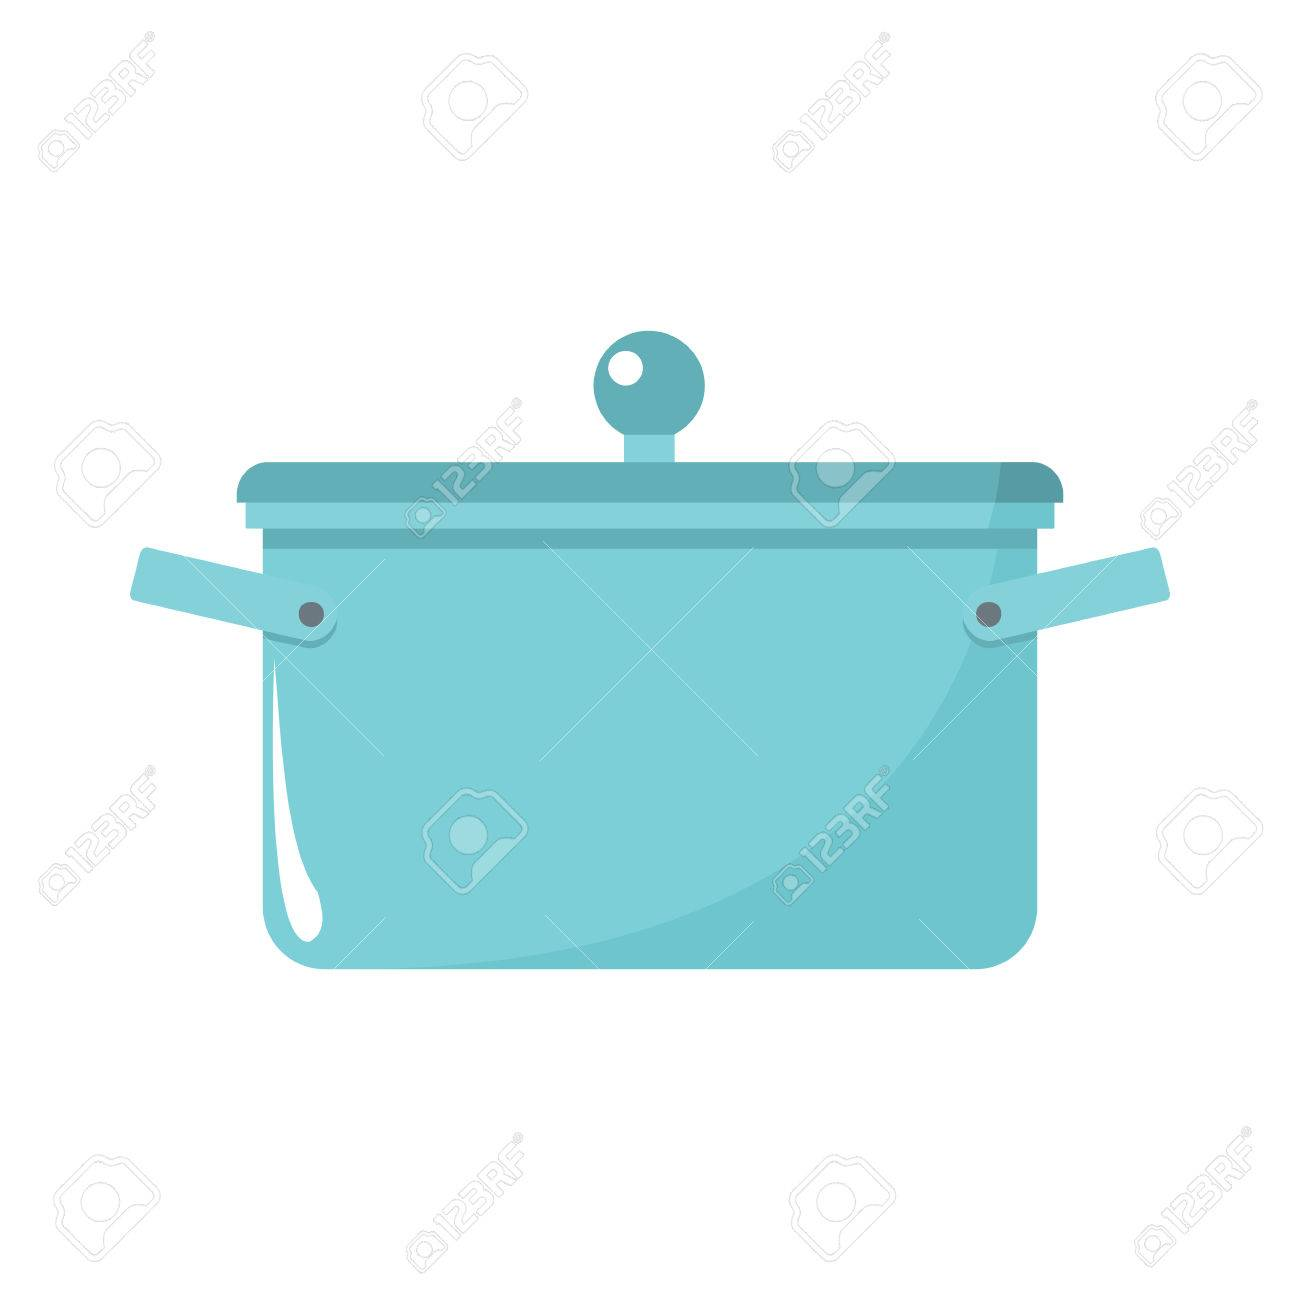 Saucepan Cartoon Icon. Kitchen Tools, Cookware And Kitchenware Illustration  For You Kitchen Design Stock